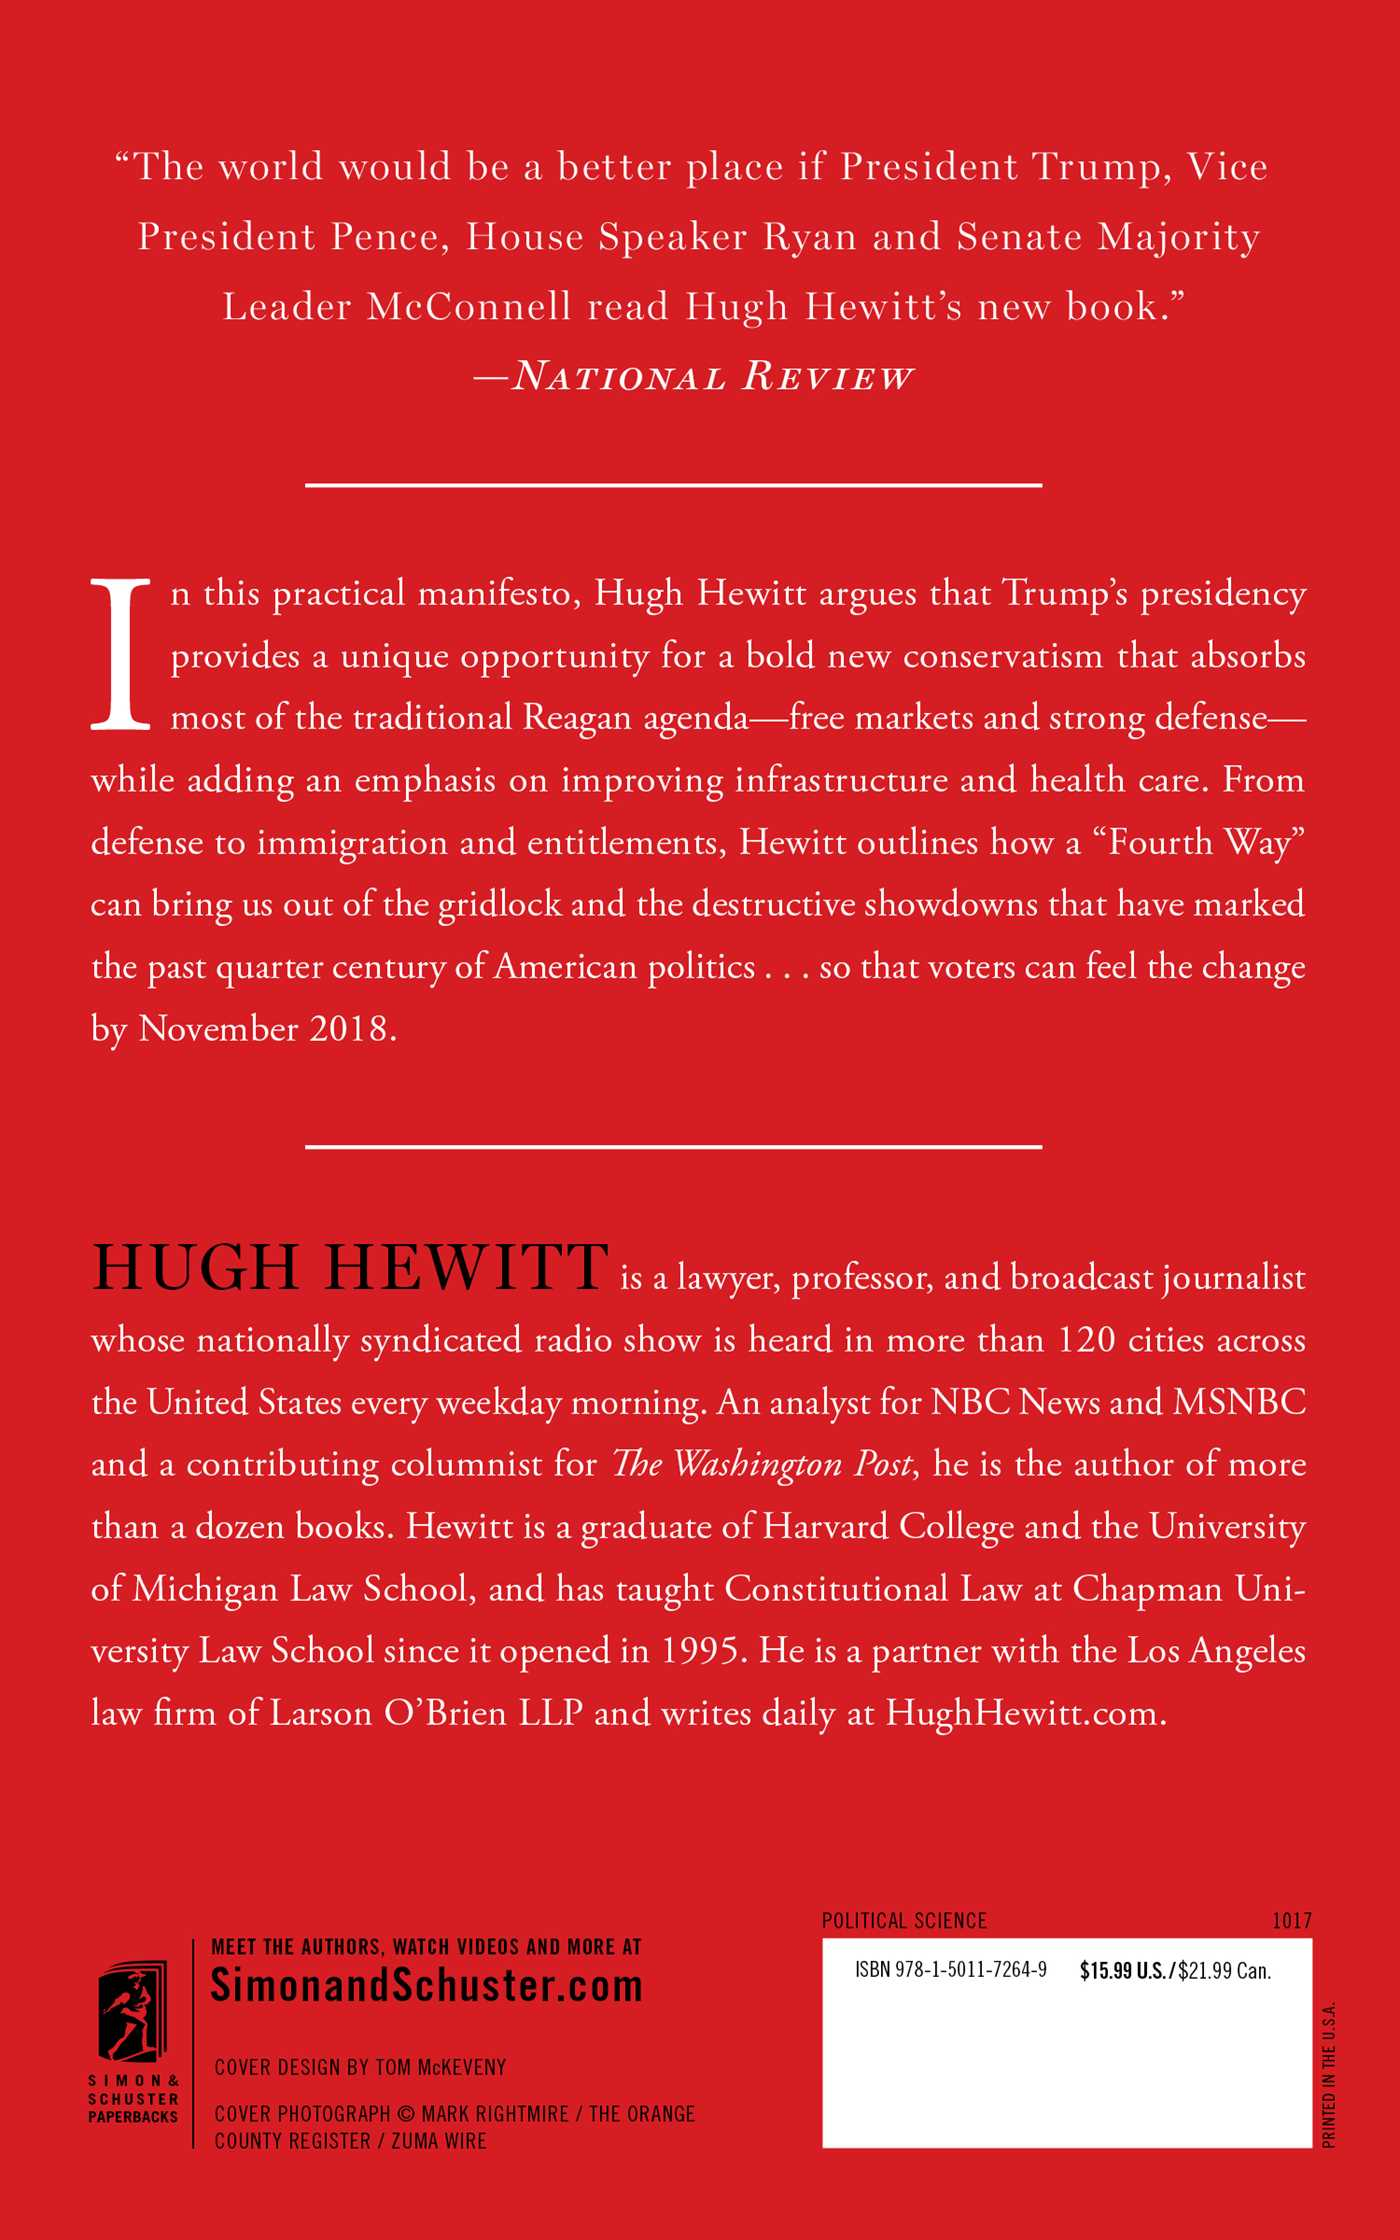 The hugh hewitts little red book 9781501172649 hr back